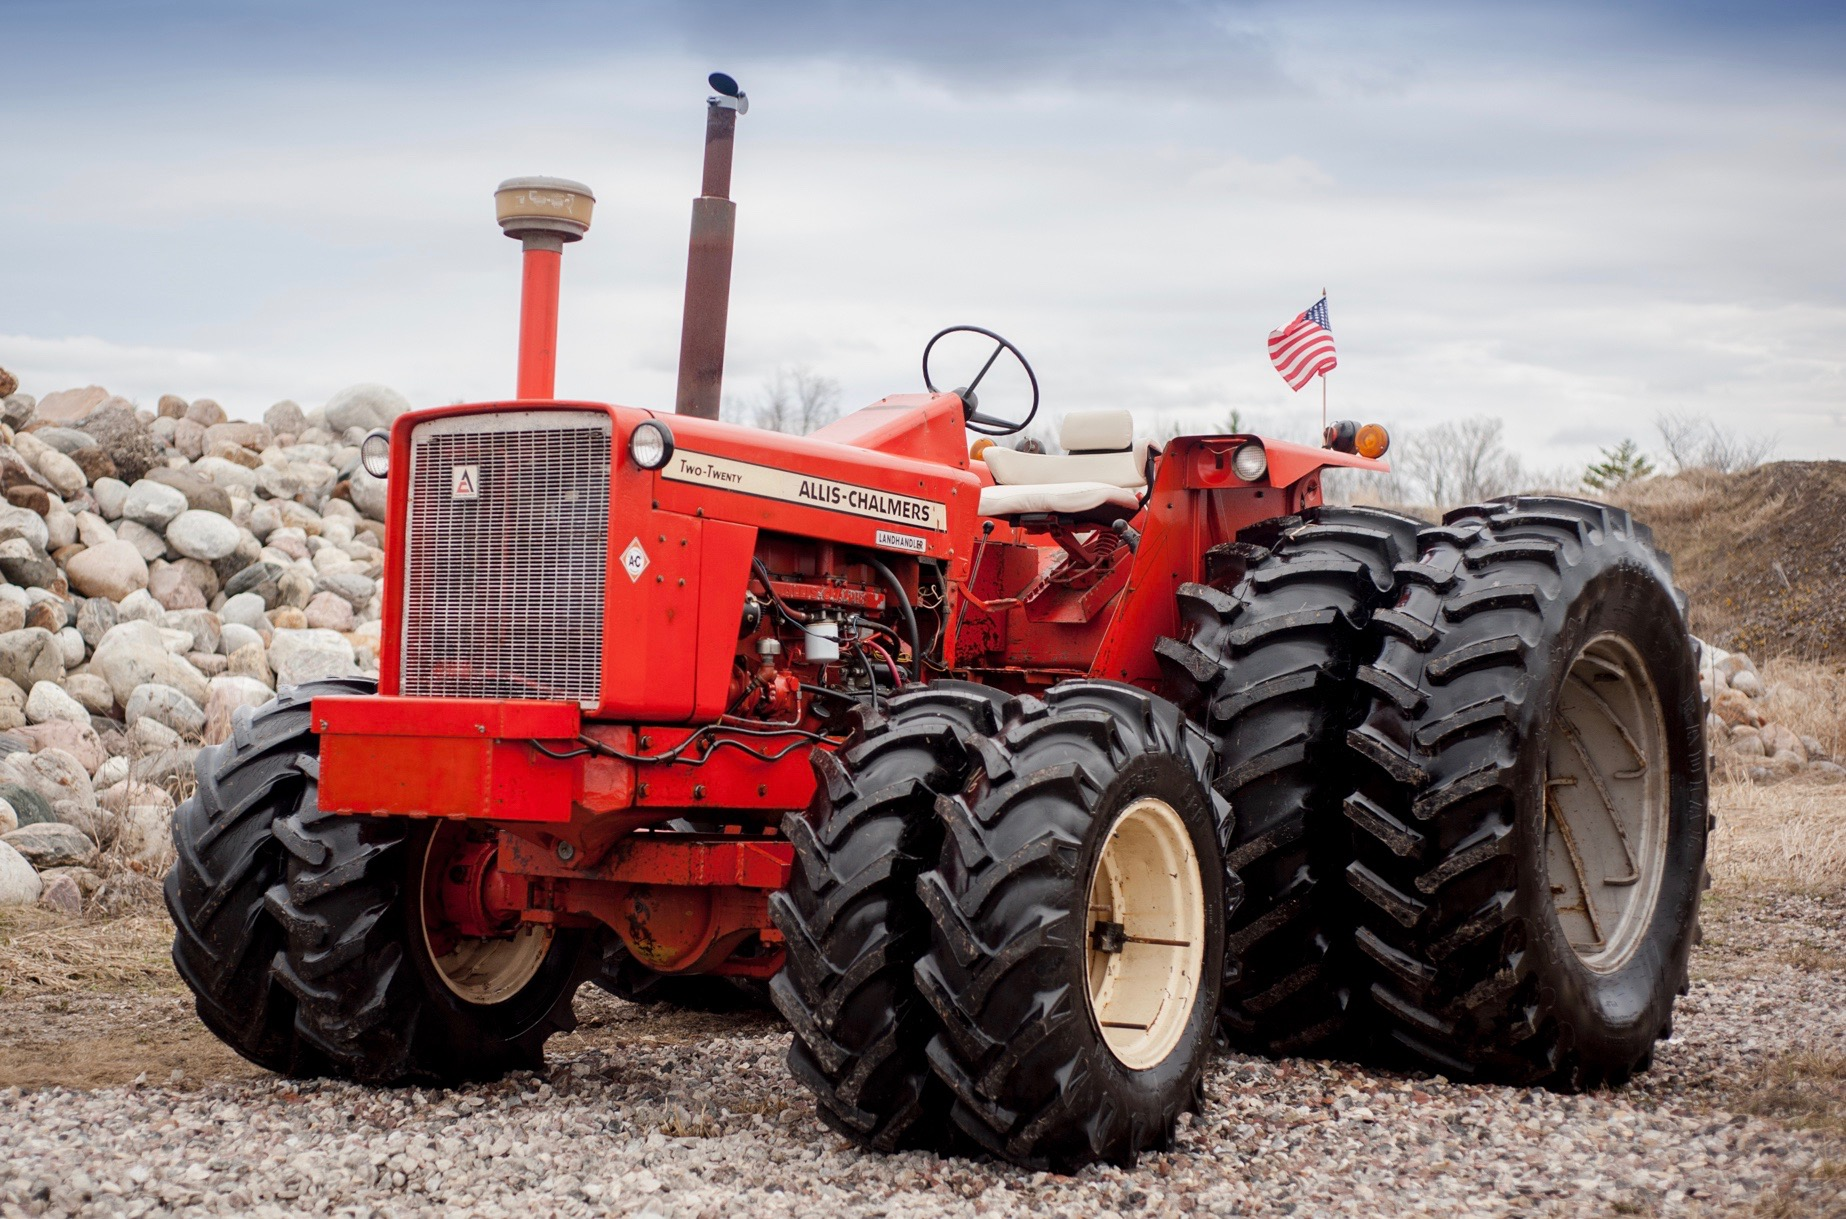 1970 Allis-Chalmers 220 tractor brings $75,000 (Canadian dollars) | Mecum Auctions photo